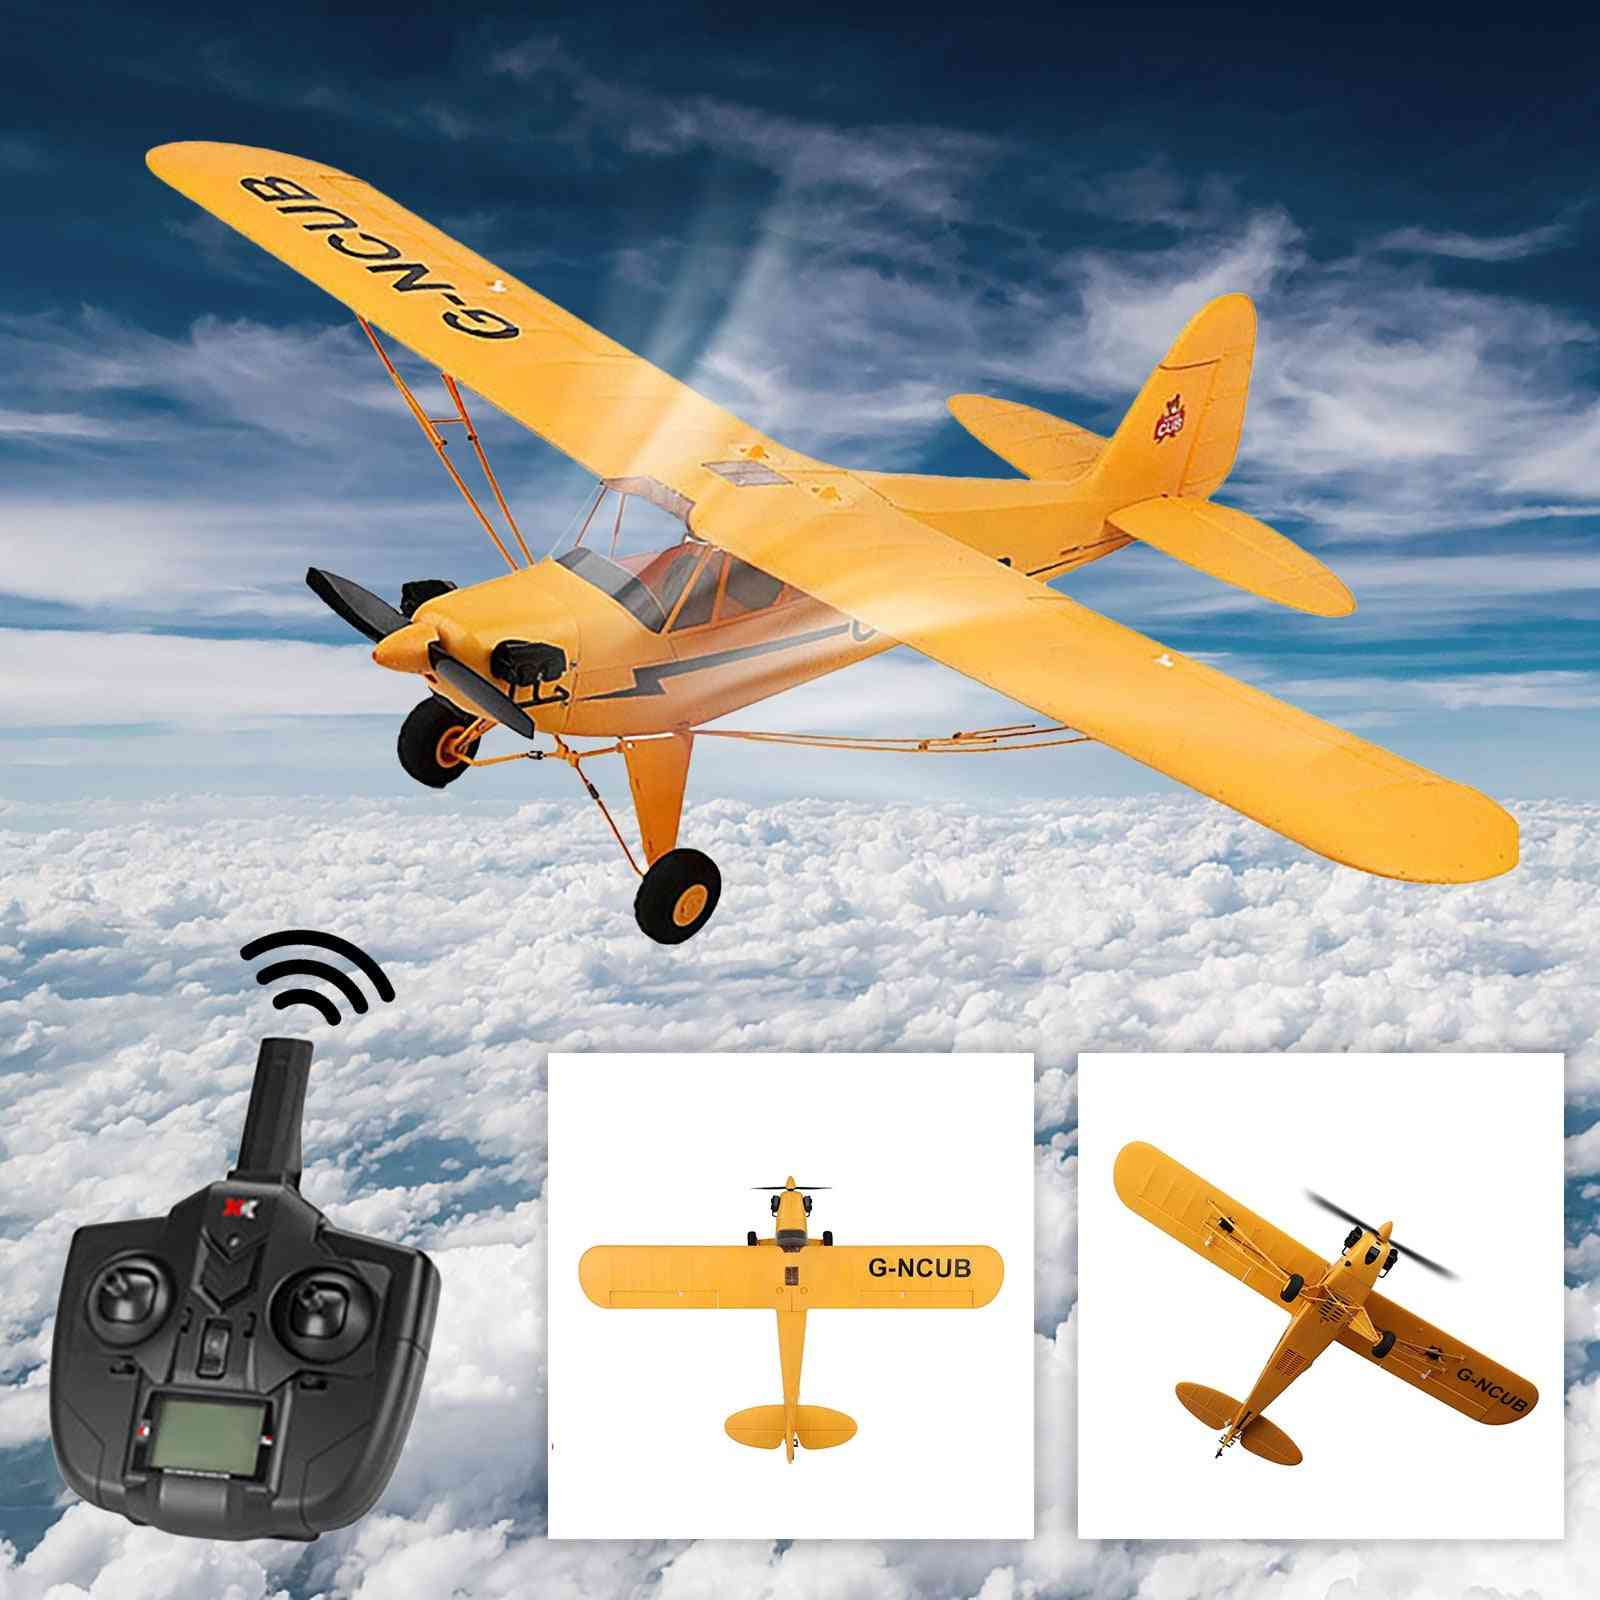 Xk A160 Rc Plane 3d High-performance 1406 Brushless Motor Airplane Rc Drone